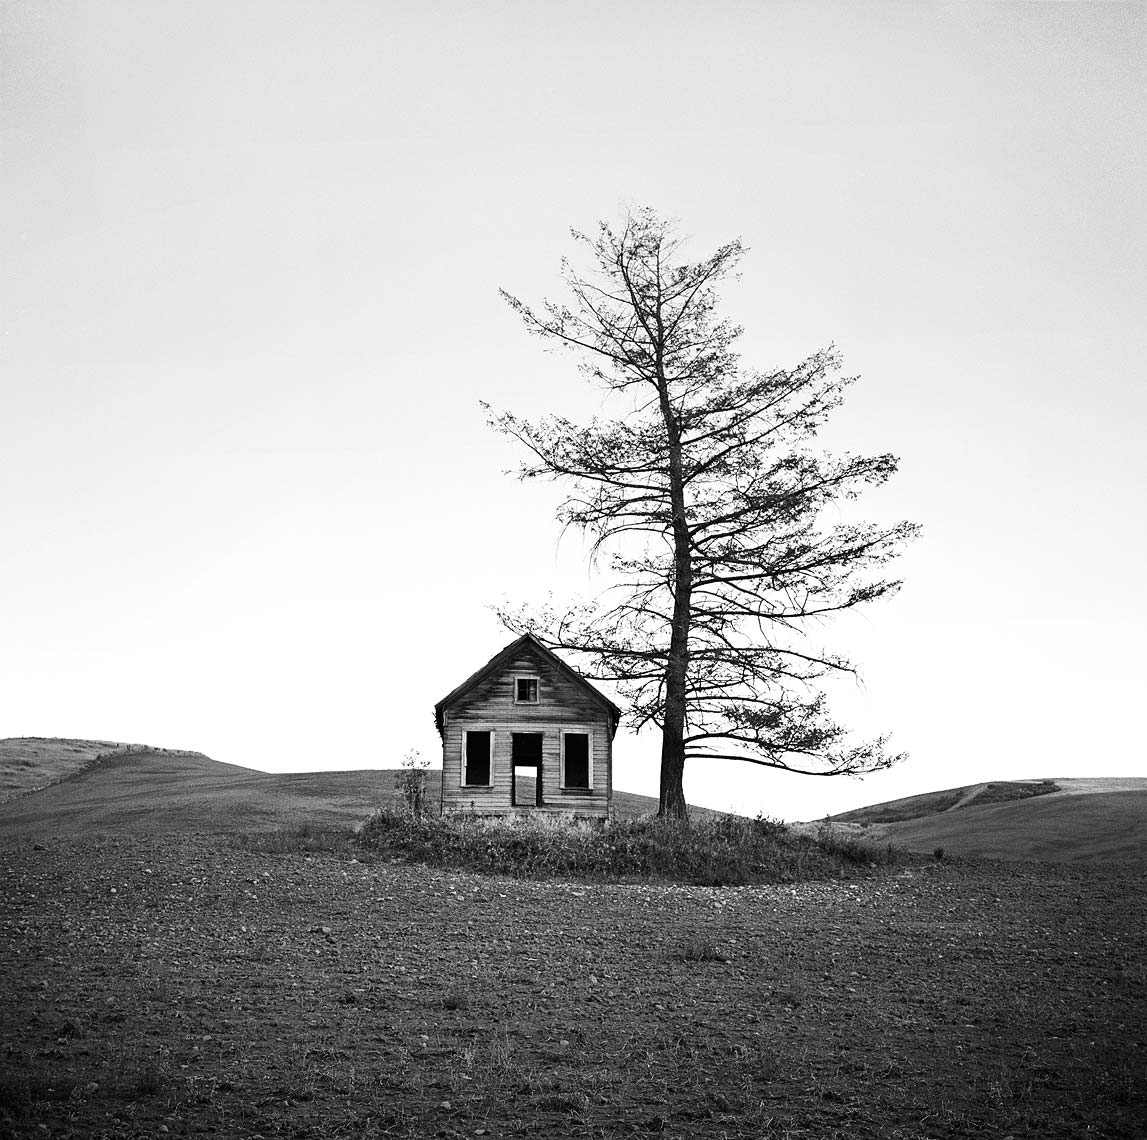 desolation-house